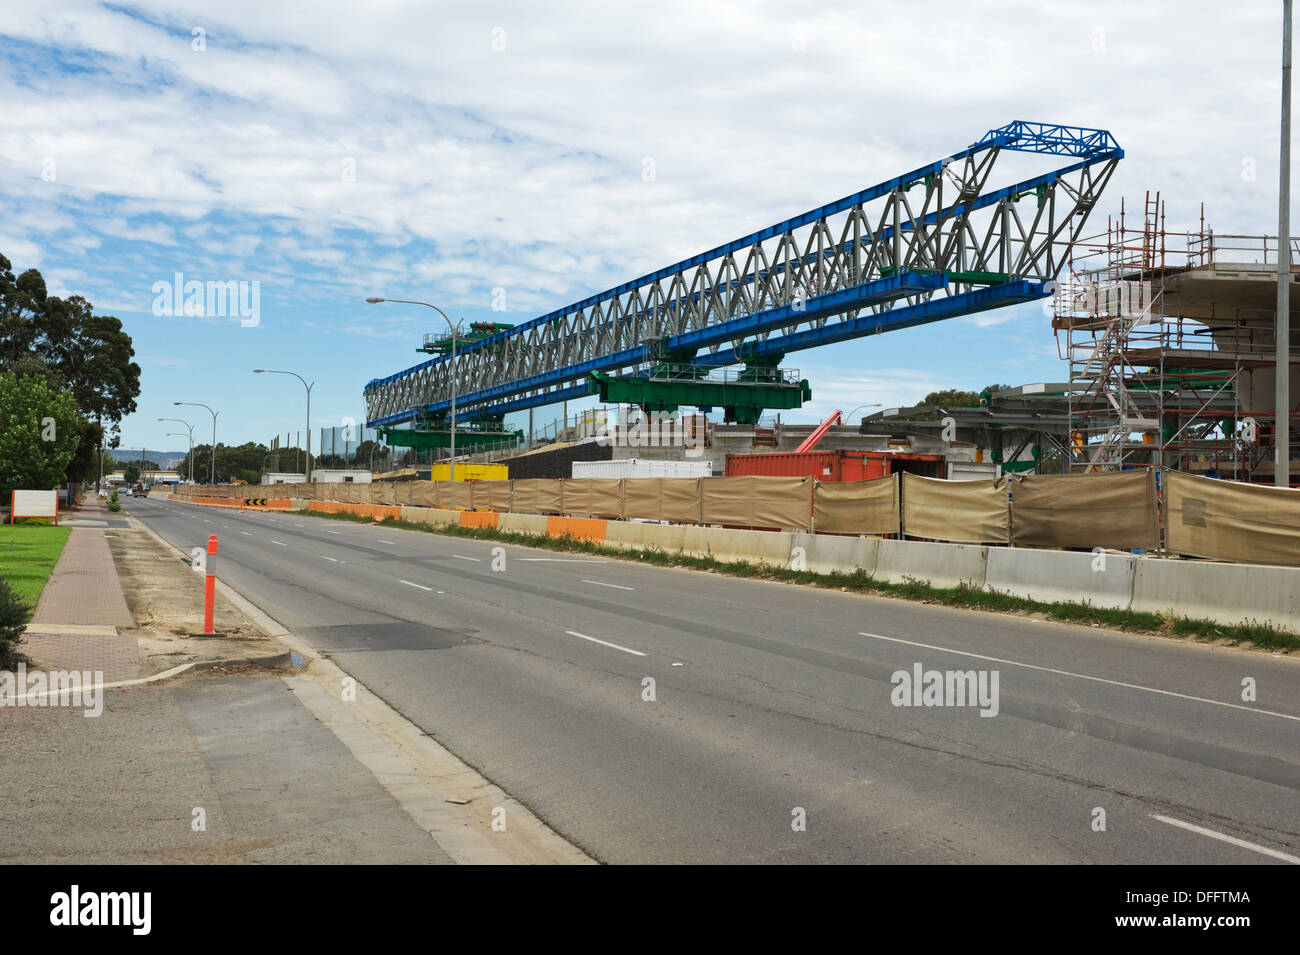 general view for the reconstruction of the road with different mechanisms - Stock Image